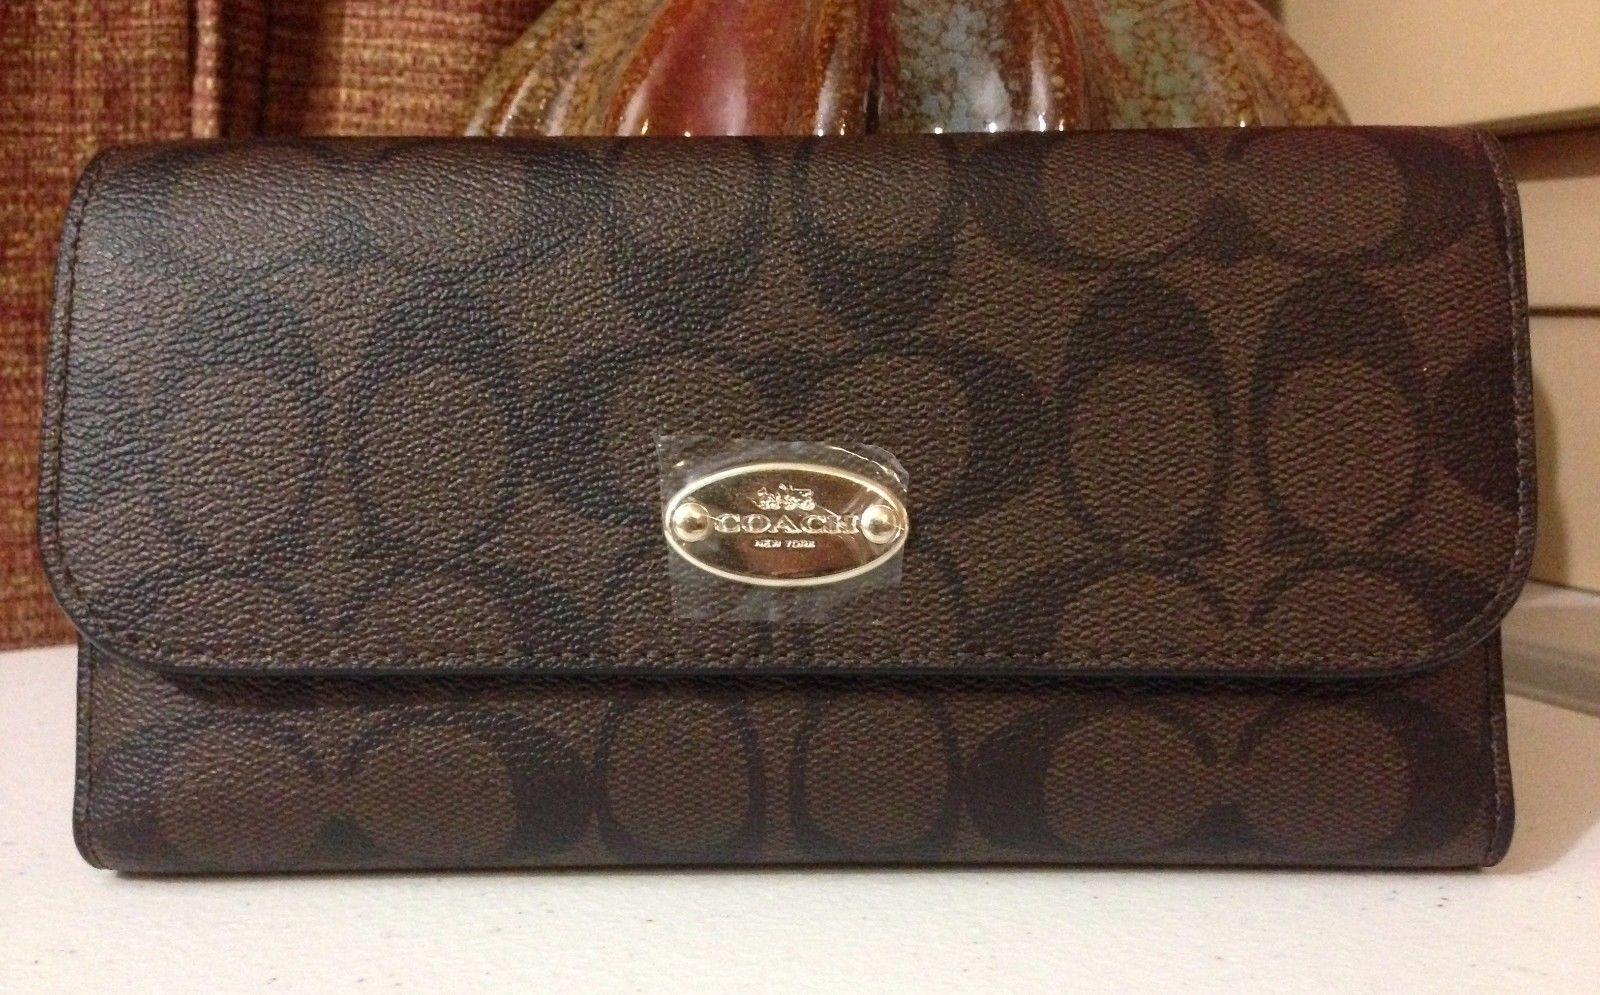 NWT Coach Signature PVC Checkbook Wallet F52681 IM/Brown/Black MSRP $250